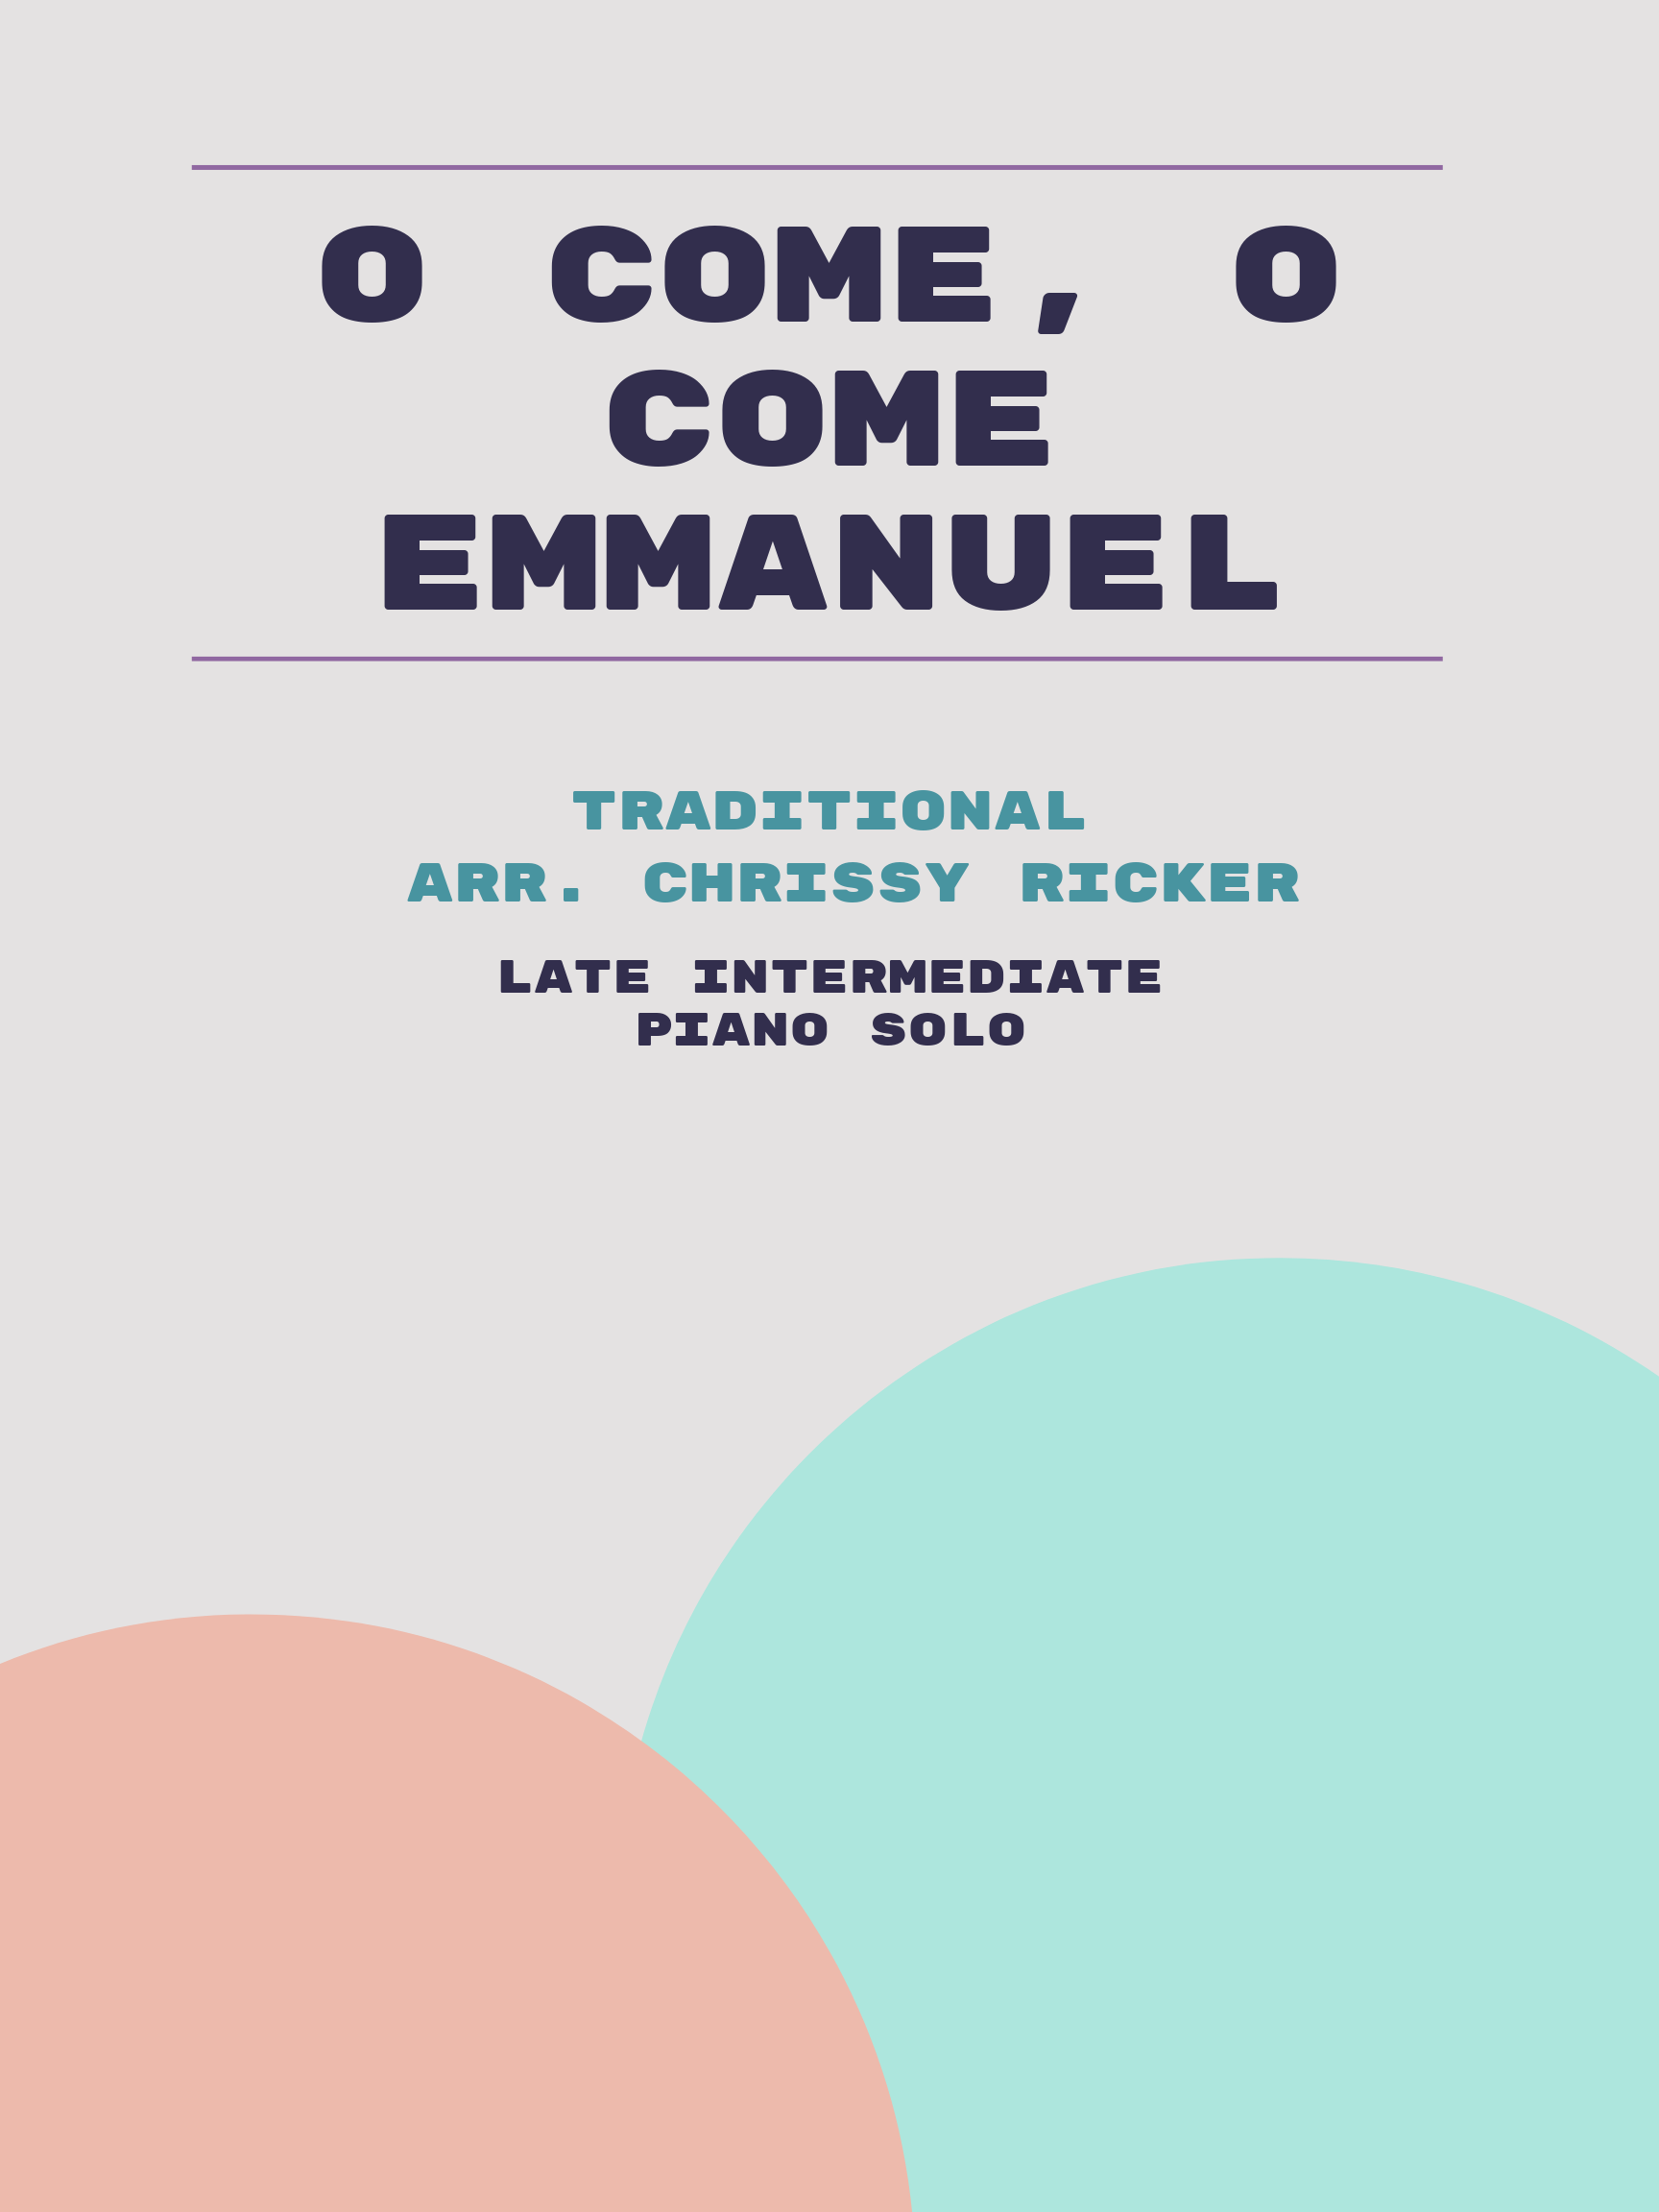 O Come, O Come Emmanuel by Traditional